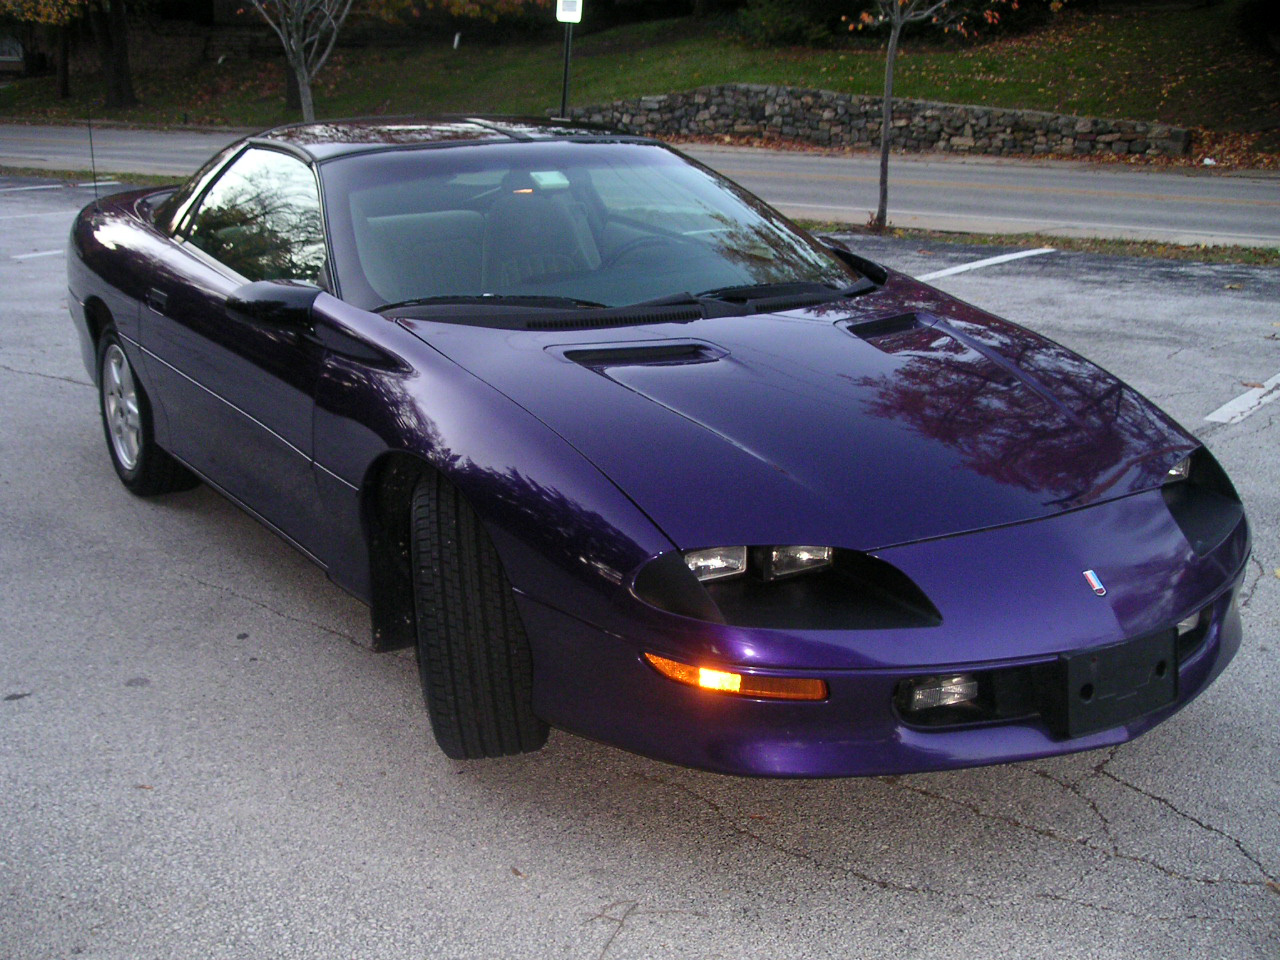 camaro 1997 rs chevrolet purple z28 1998 metallic bright v6 cars hatchback pic